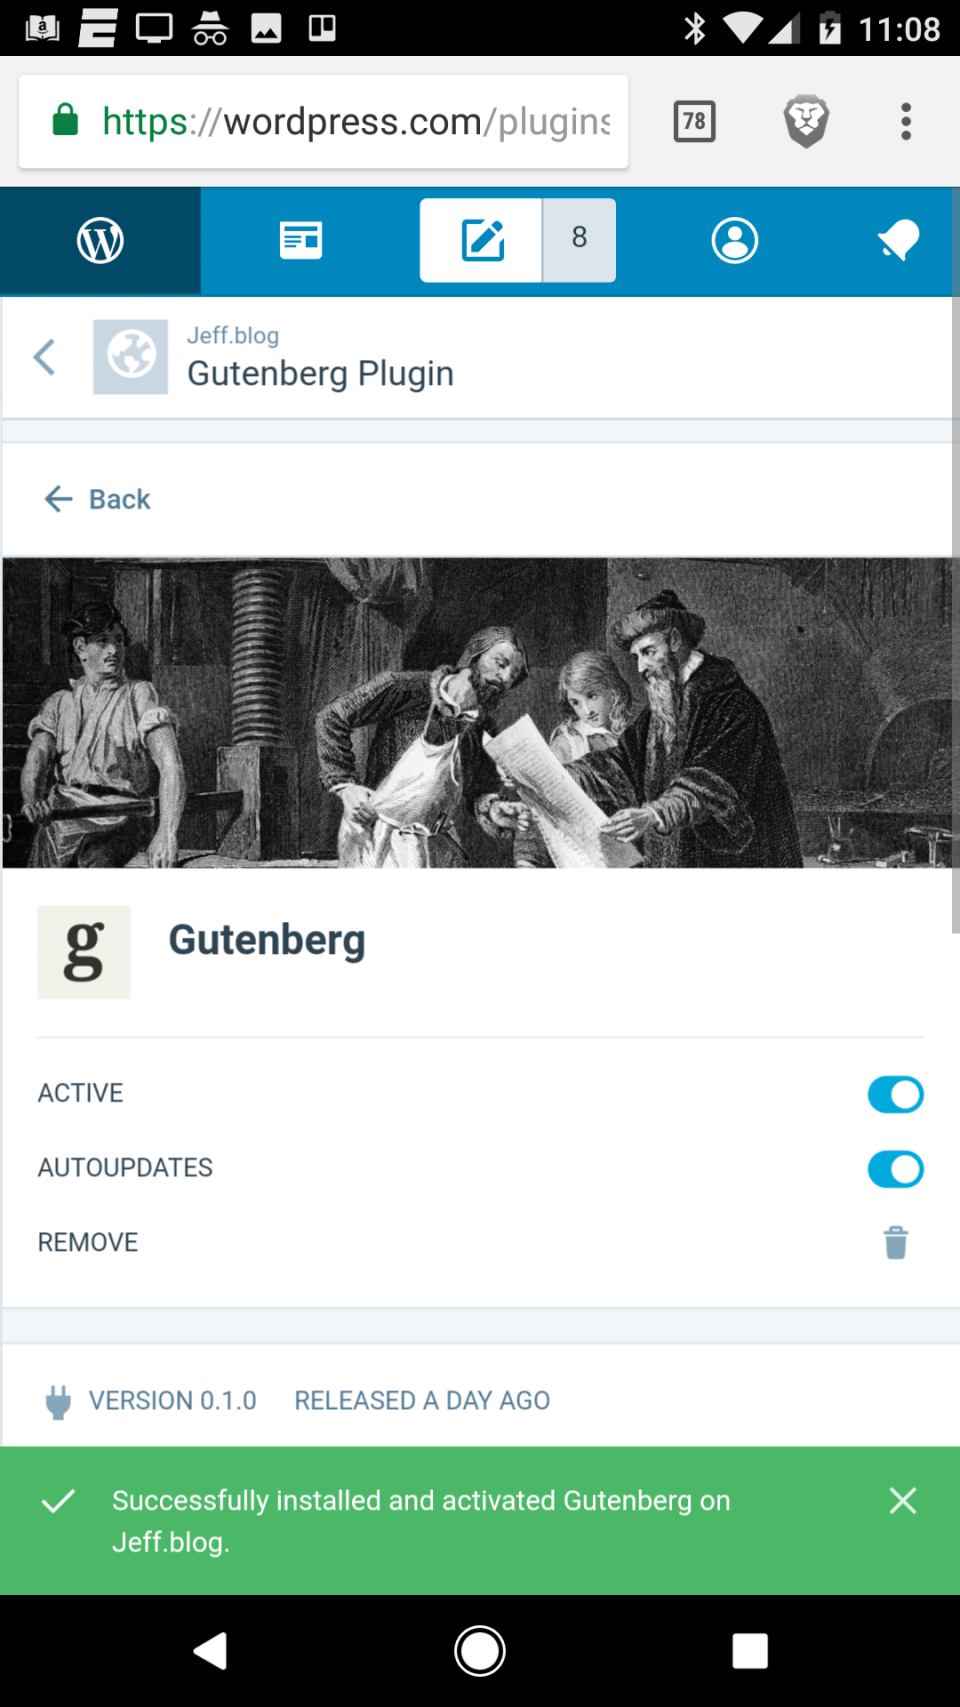 This Post is Brought to You by Gutenberg